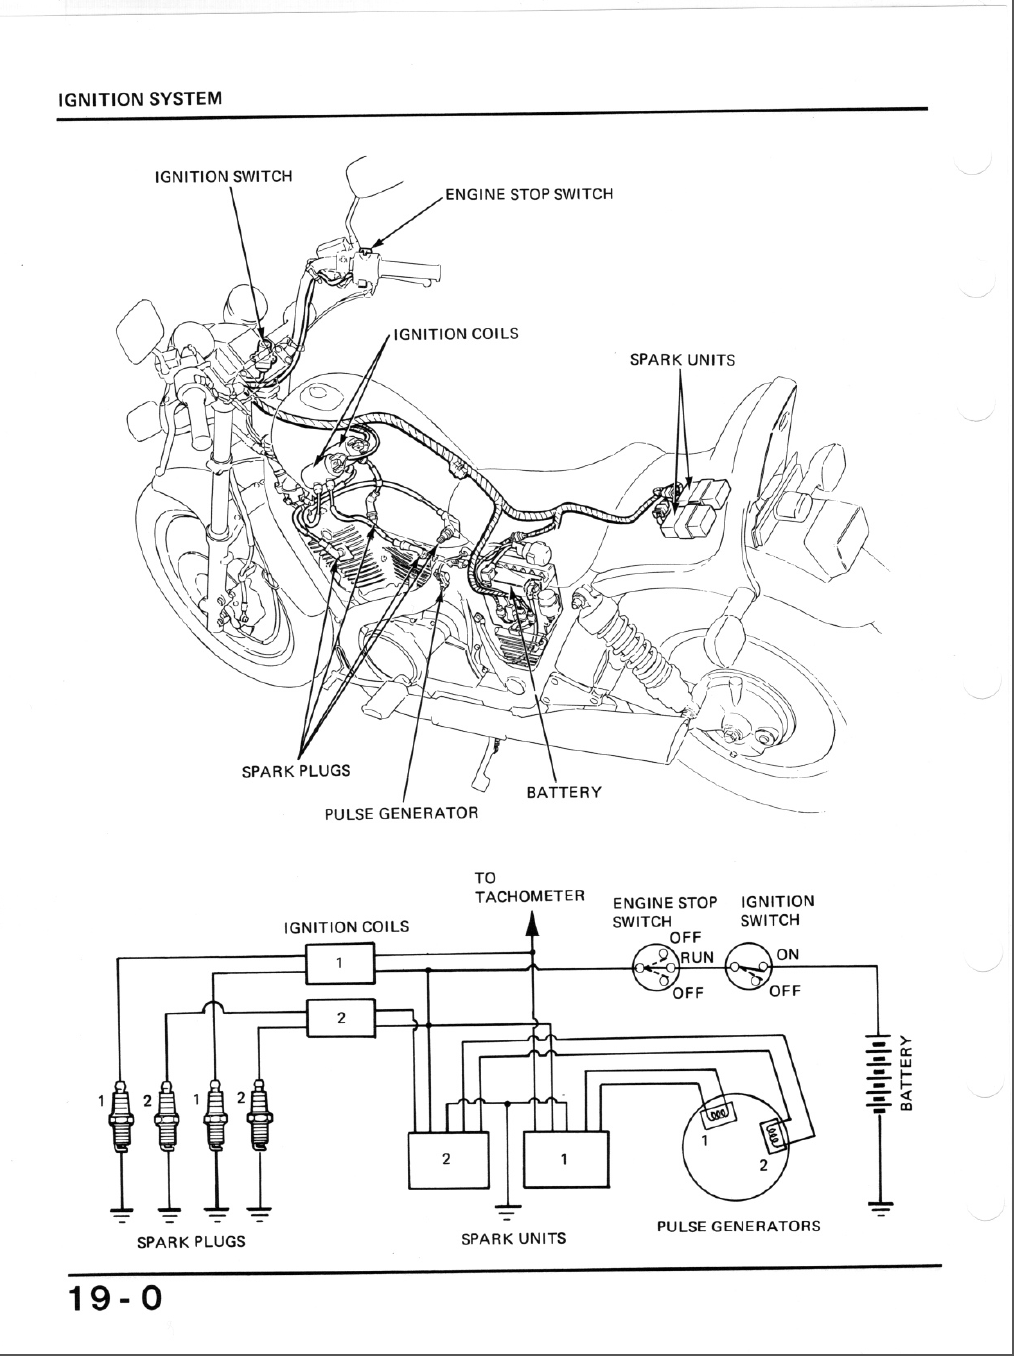 1984 honda shadow 700 ignition system png views 8411 size 460 8 kb